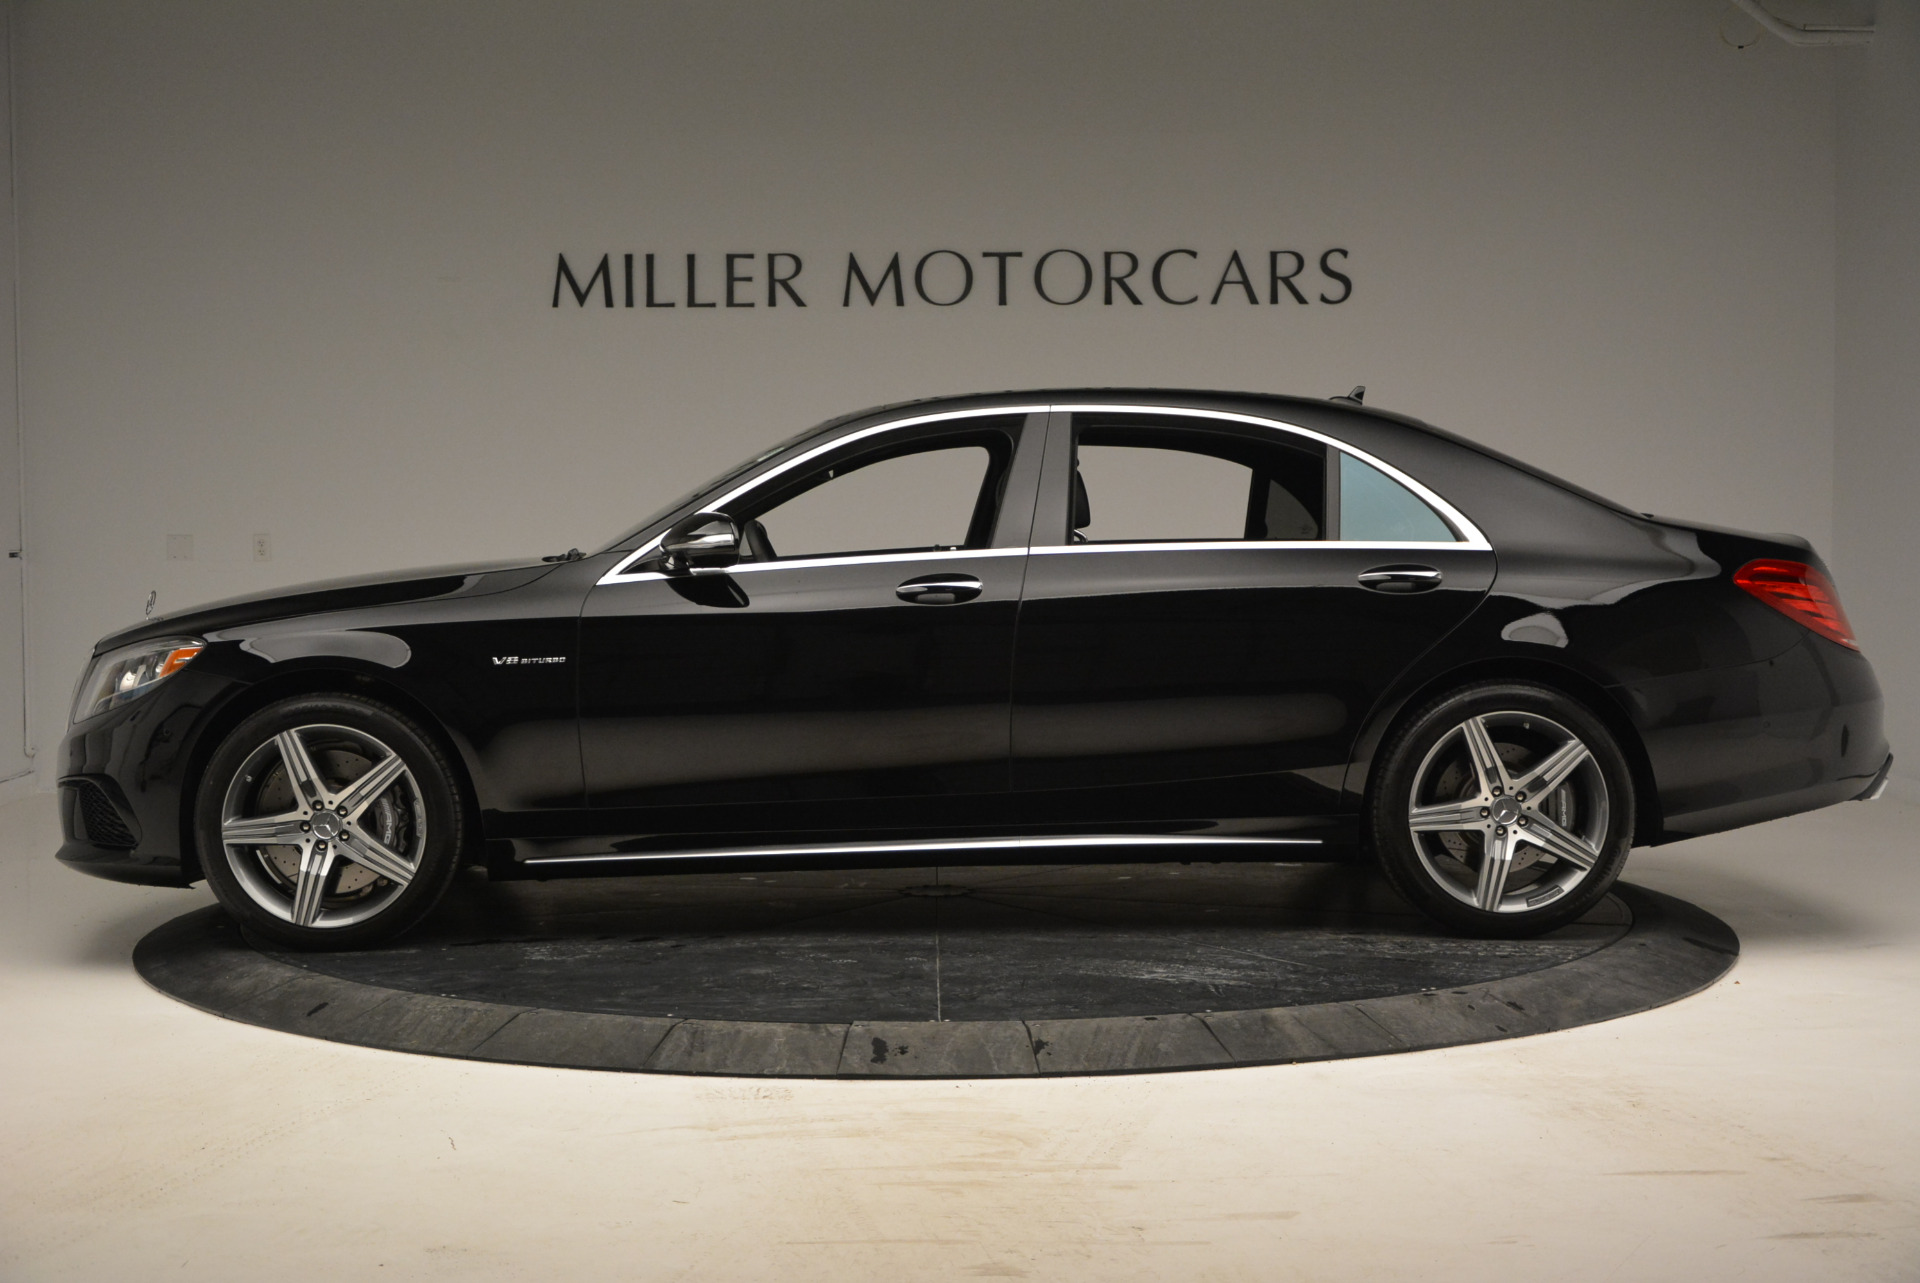 Used 2014 Mercedes Benz S-Class S 63 AMG For Sale In Greenwich, CT 912_p3